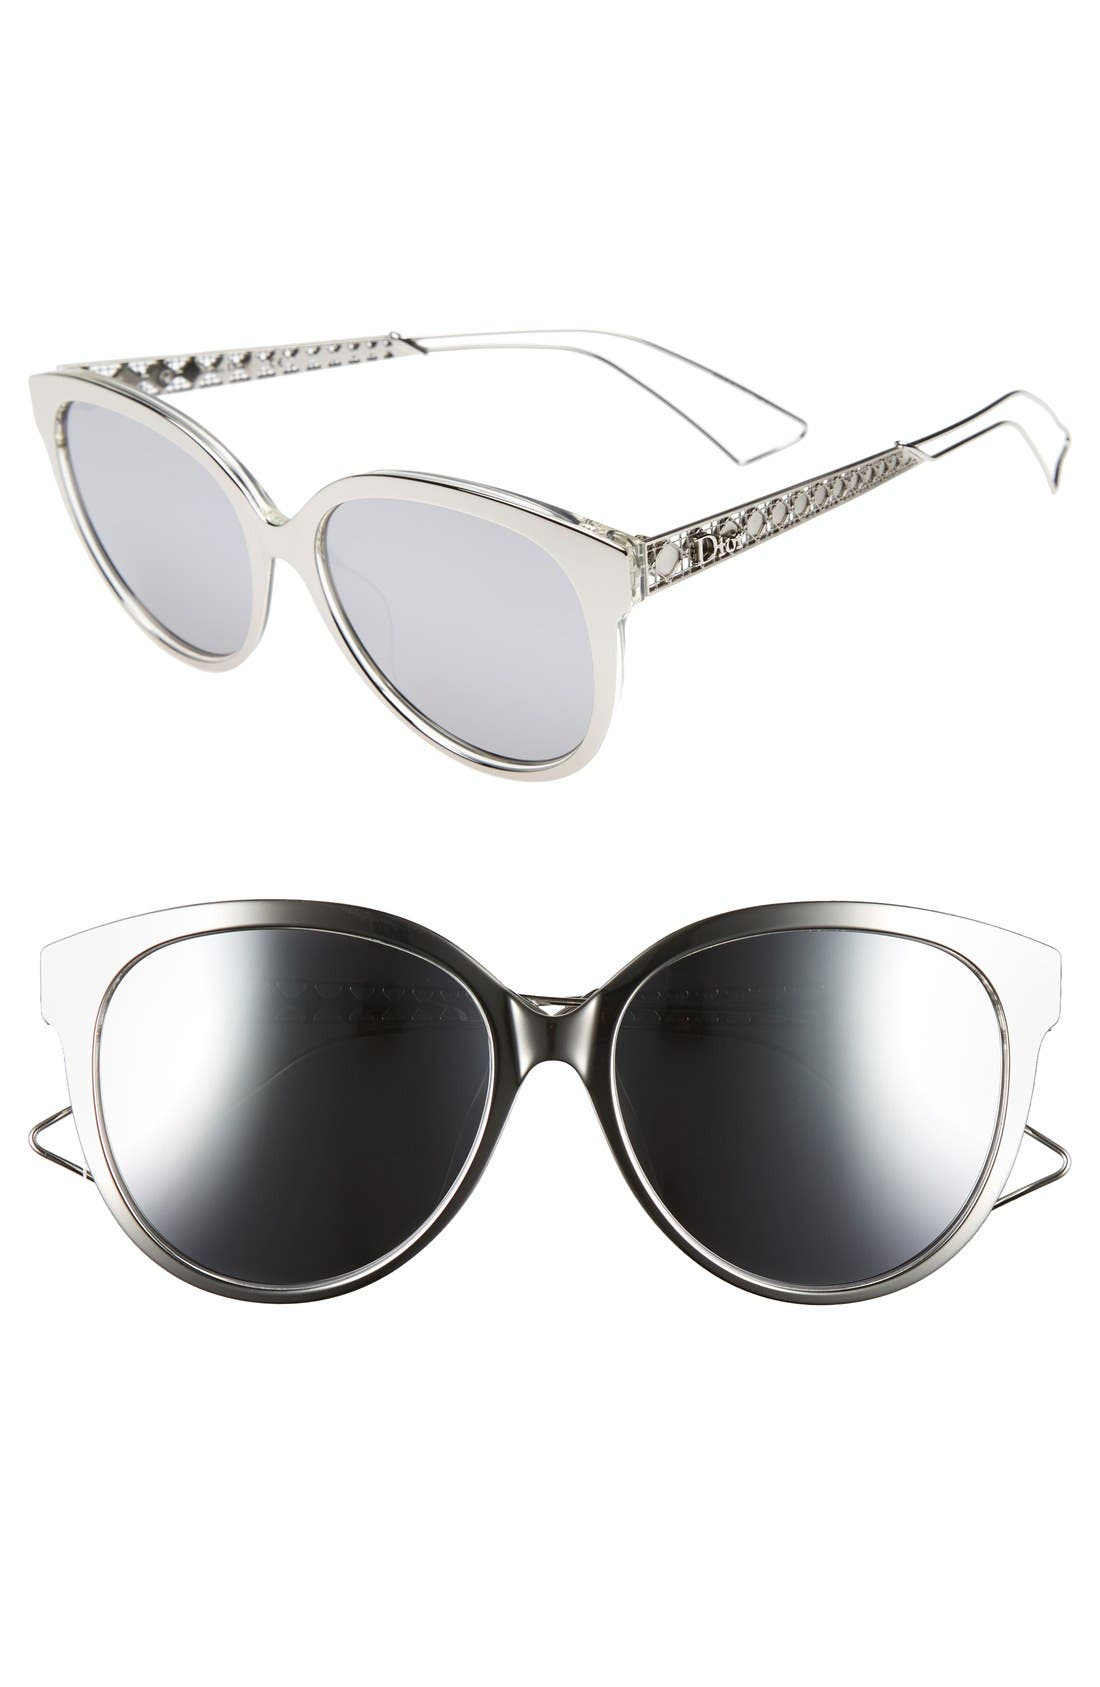 Main Image - Dior Diorama 2 56mm Cat Eye Sunglasses